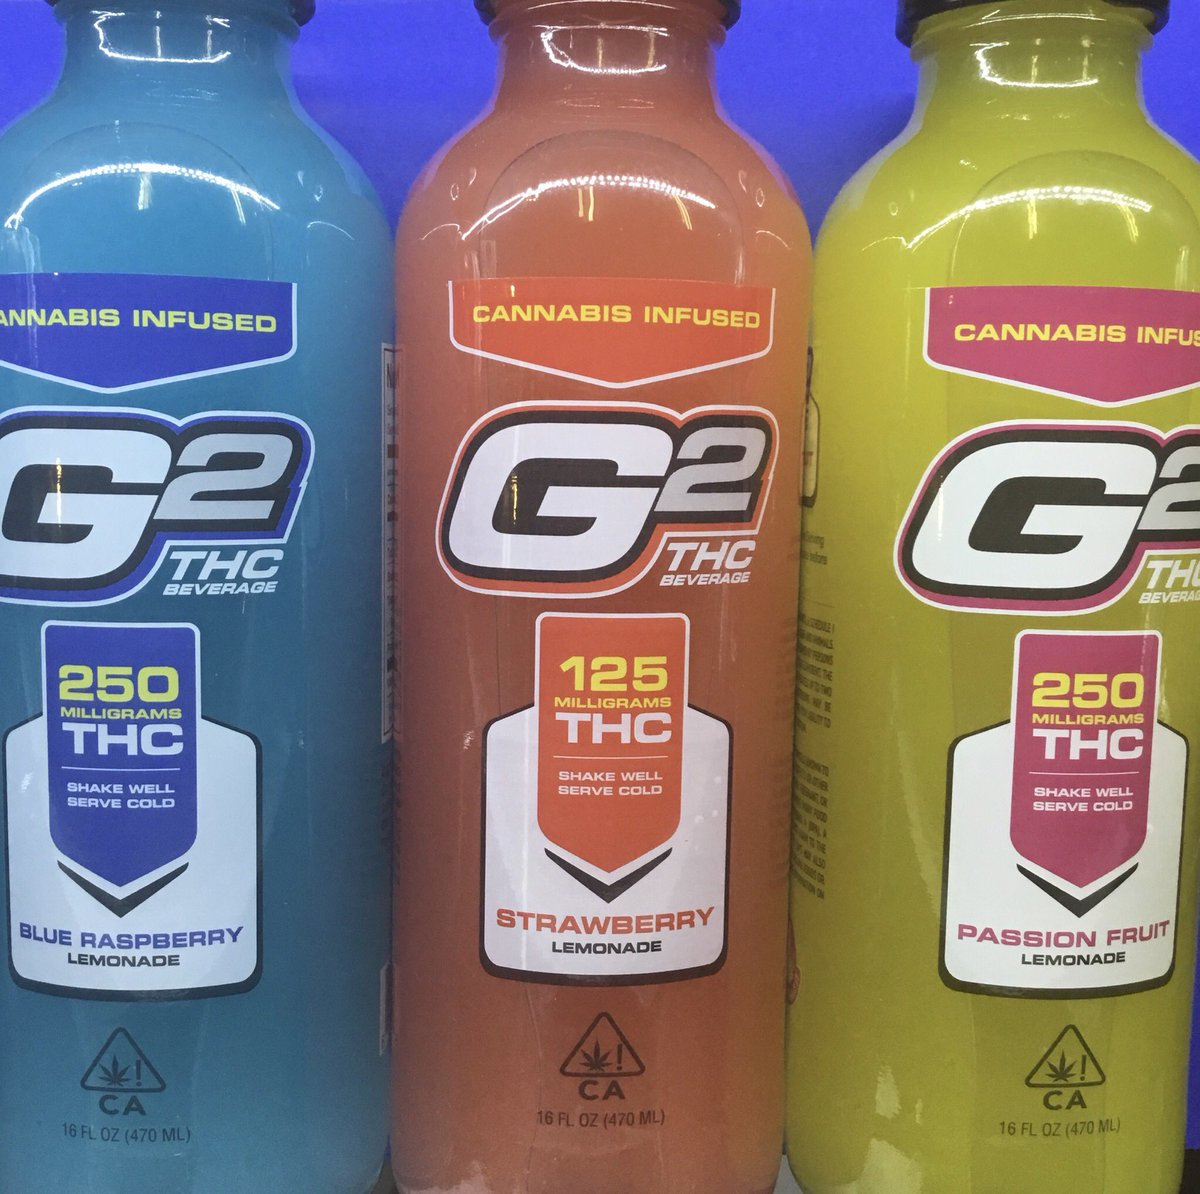 #G2Lemonade is perfect if you are looking for a heavy buzz and don't want the hassle of smoking! #drank #lit #edibles https://t.co/1Hqb7nNfQB